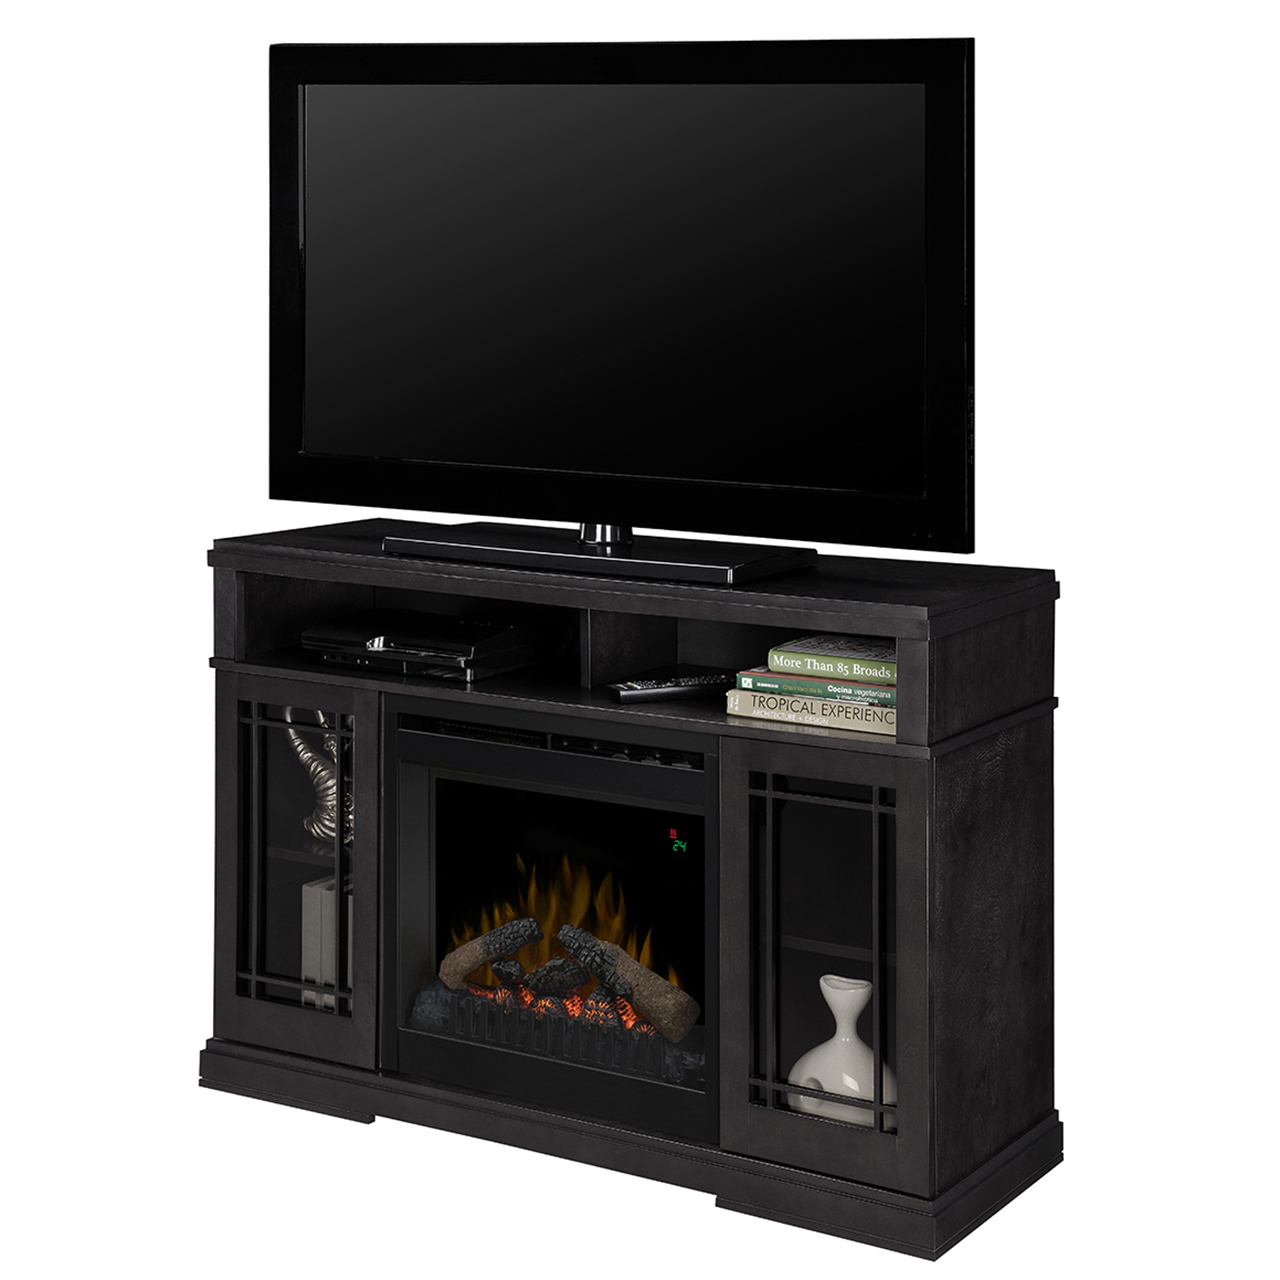 Farley Raven Entertainment Center Electric Fireplace Dfp20l 1424ra